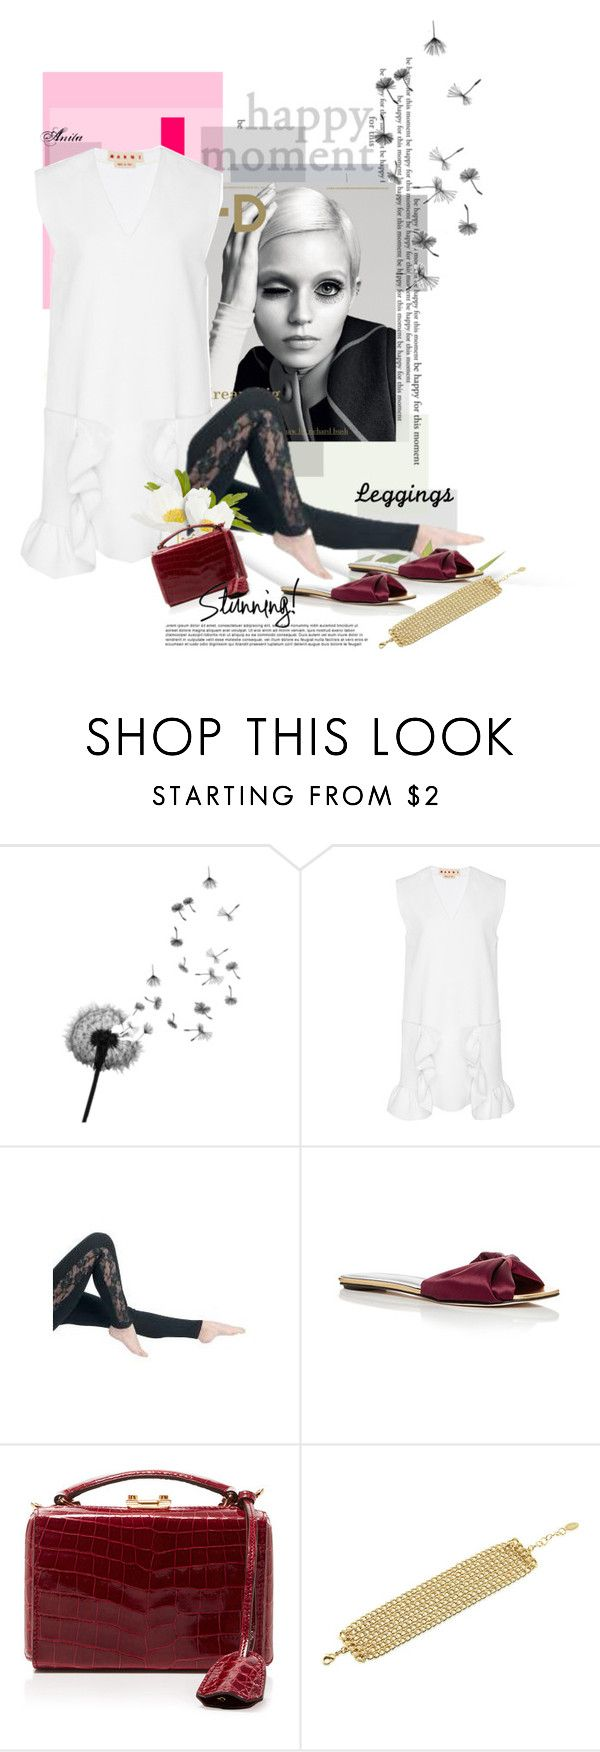 """Today Let's wear leggins"" by wodecai ❤ liked on Polyvore featuring Marni, Oscar de la Renta, Mark Cross and BERRICLE"